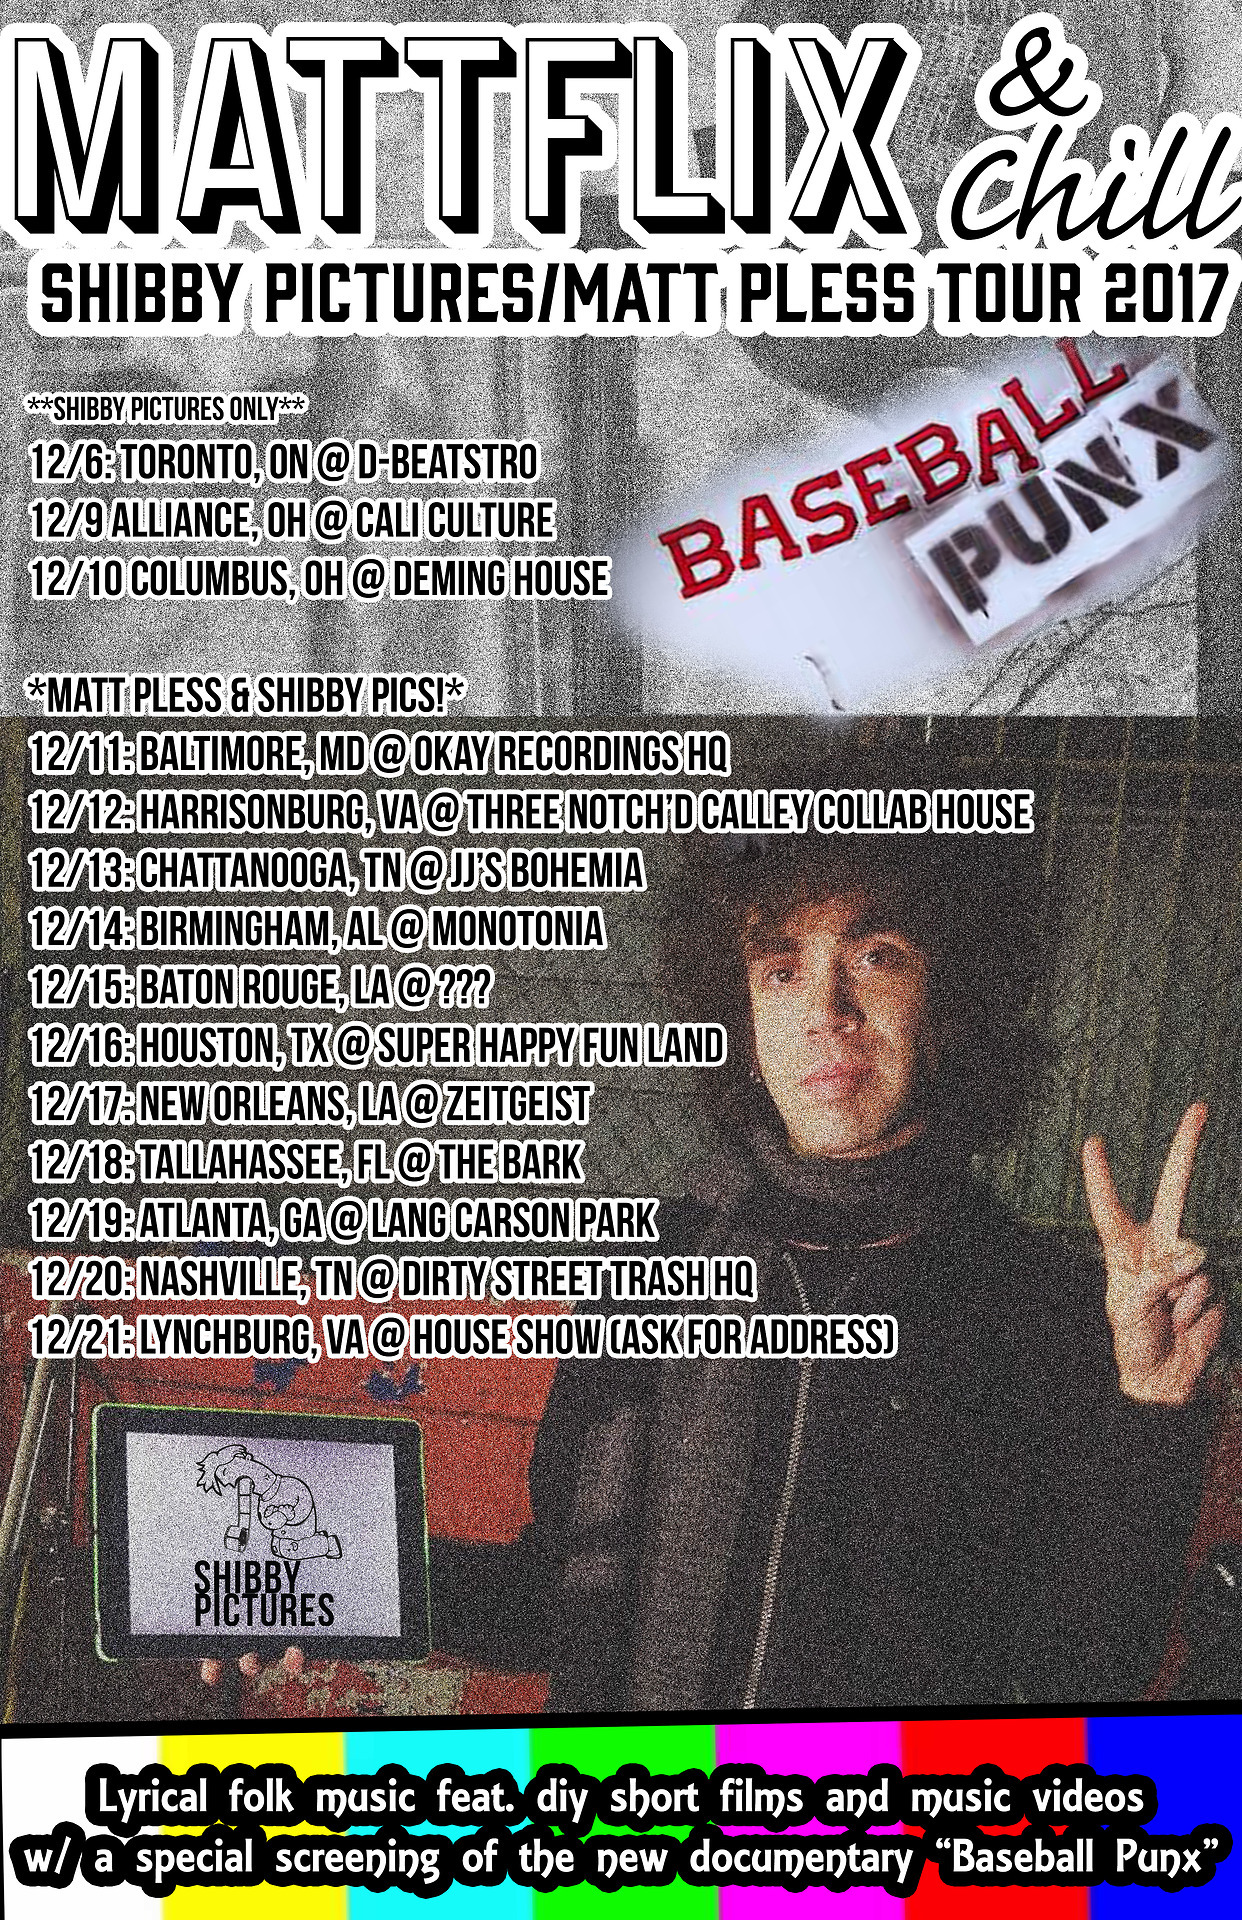 Tour with Matt Pless begins soon!  I will be screening a nearly complete version of Baseball Punx and other shorts/music videos!  Bring canned food donations to any shows for us to bring down to Folxmas!